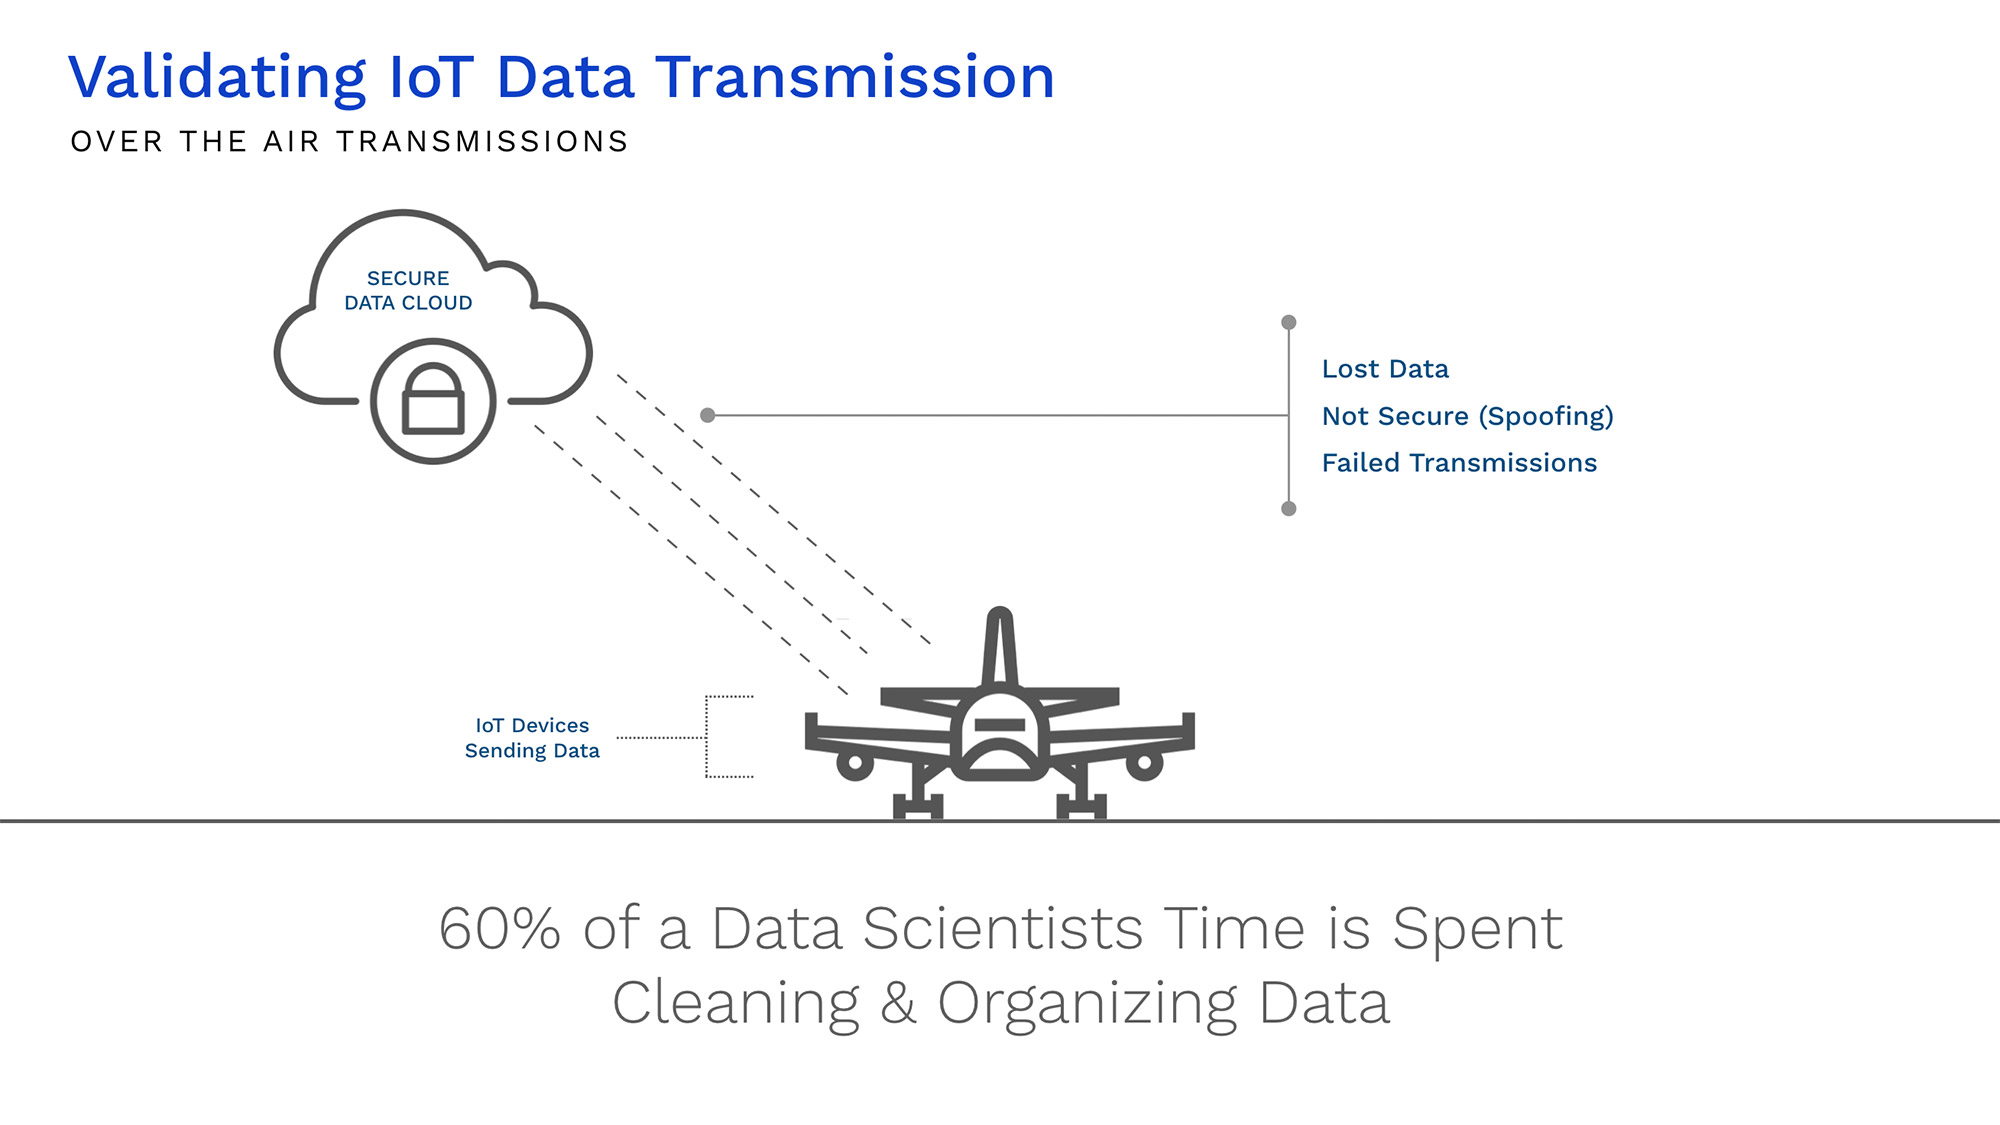 Validating IoT Data Transmission - 1